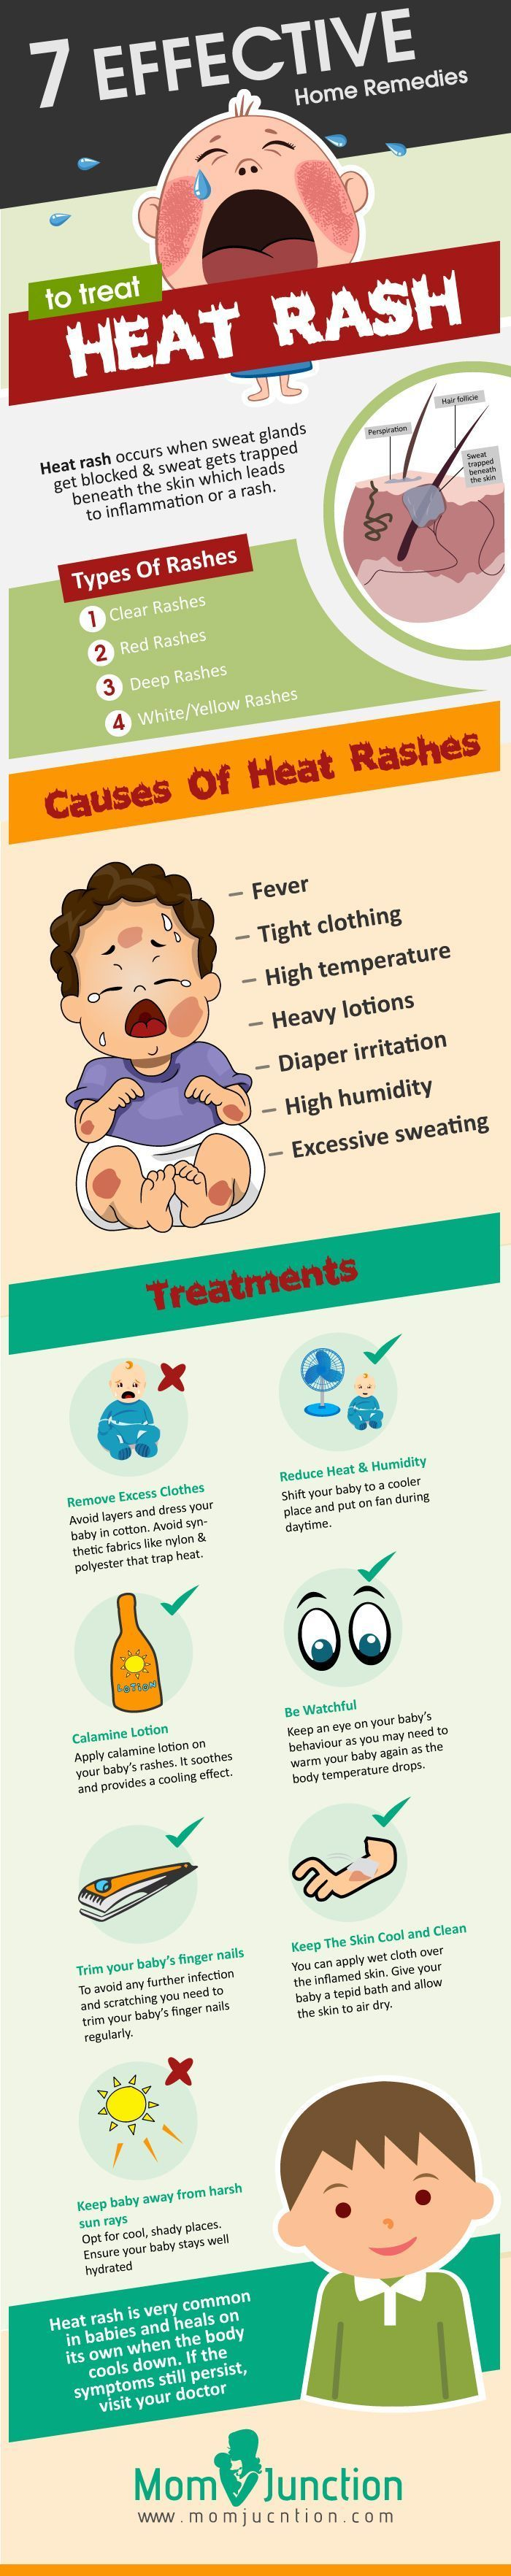 Home Remedies To Treat Heat Rash In Babies: Generally, heat rashes vanish in a few days. You can try out the following remedies at home to relieve your baby from intense itching caused due to heat rash